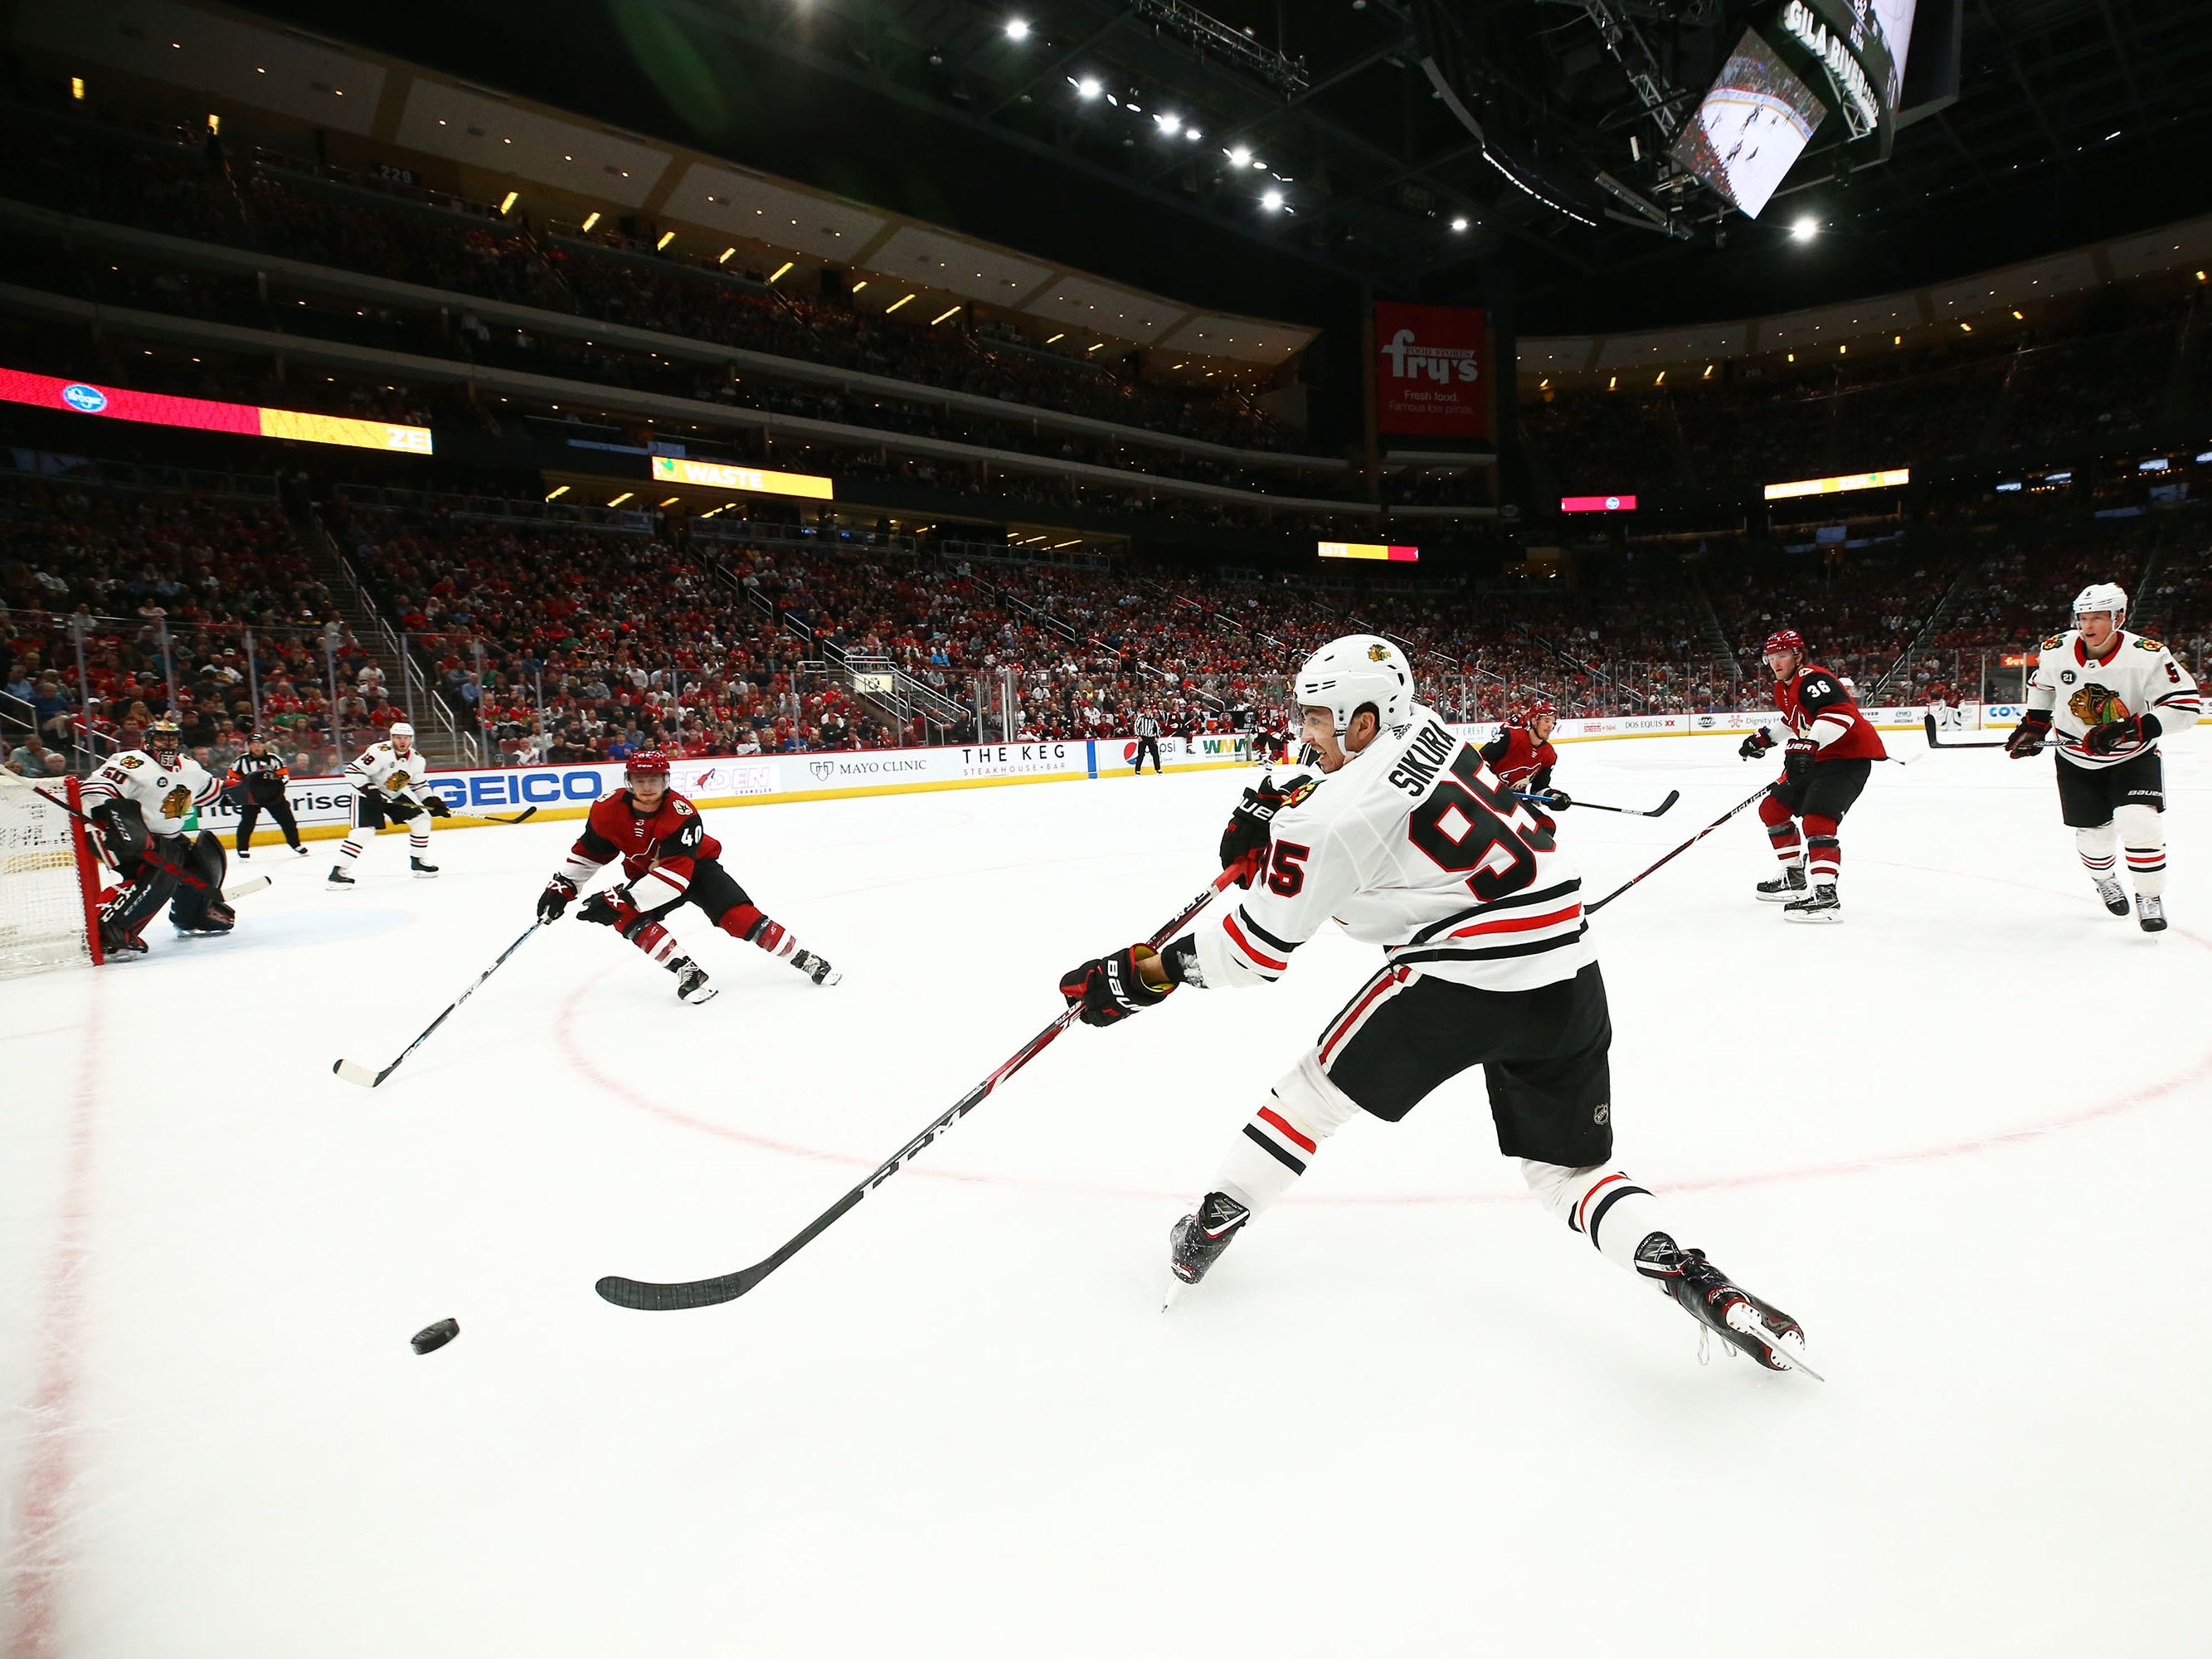 Chicago Blackhawks right wing Dylan Sikura (95) passes the puck against Arizona in the second period on Mar. 26, 2019, at Gila River Arena in Glendale, Ariz.